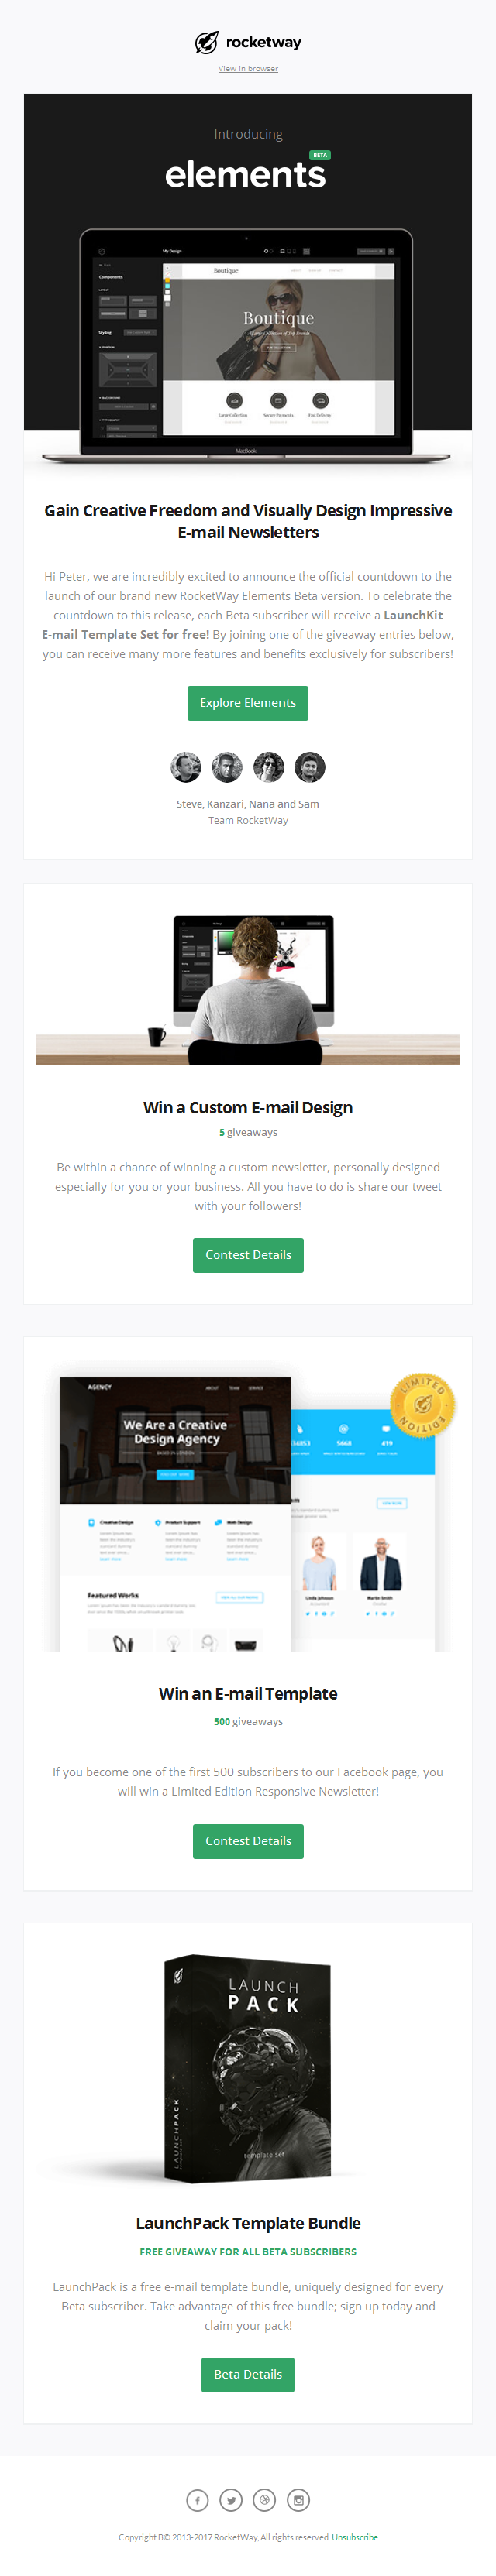 Introducing RocketWay Elements - Visually Design Impressive E-mail Newsletters